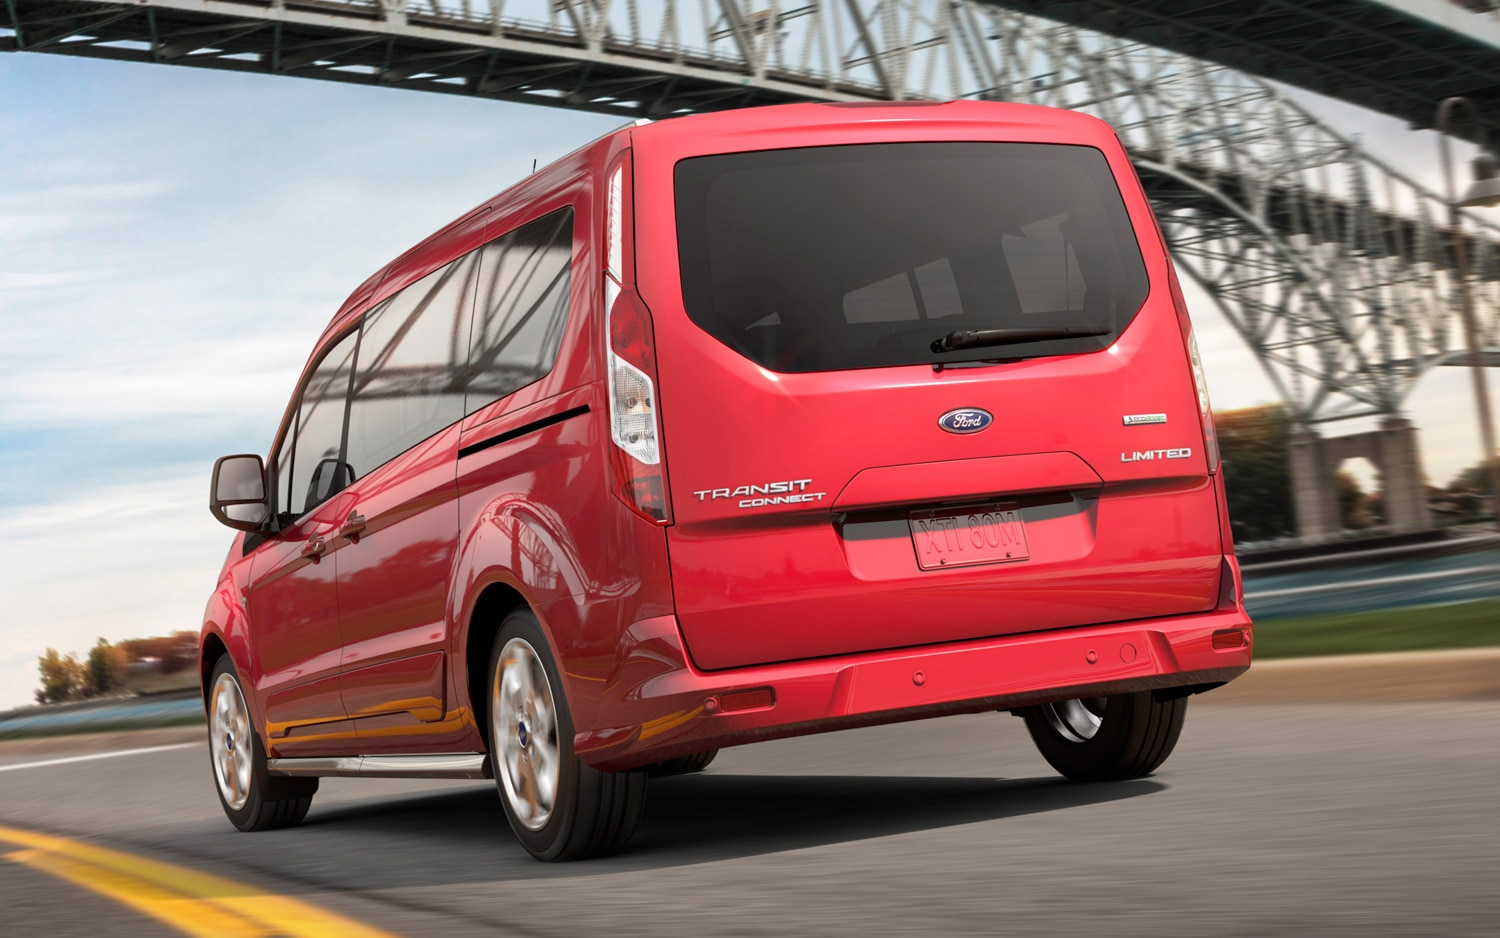 2014 Ford Transit Connect Rear View In Red11